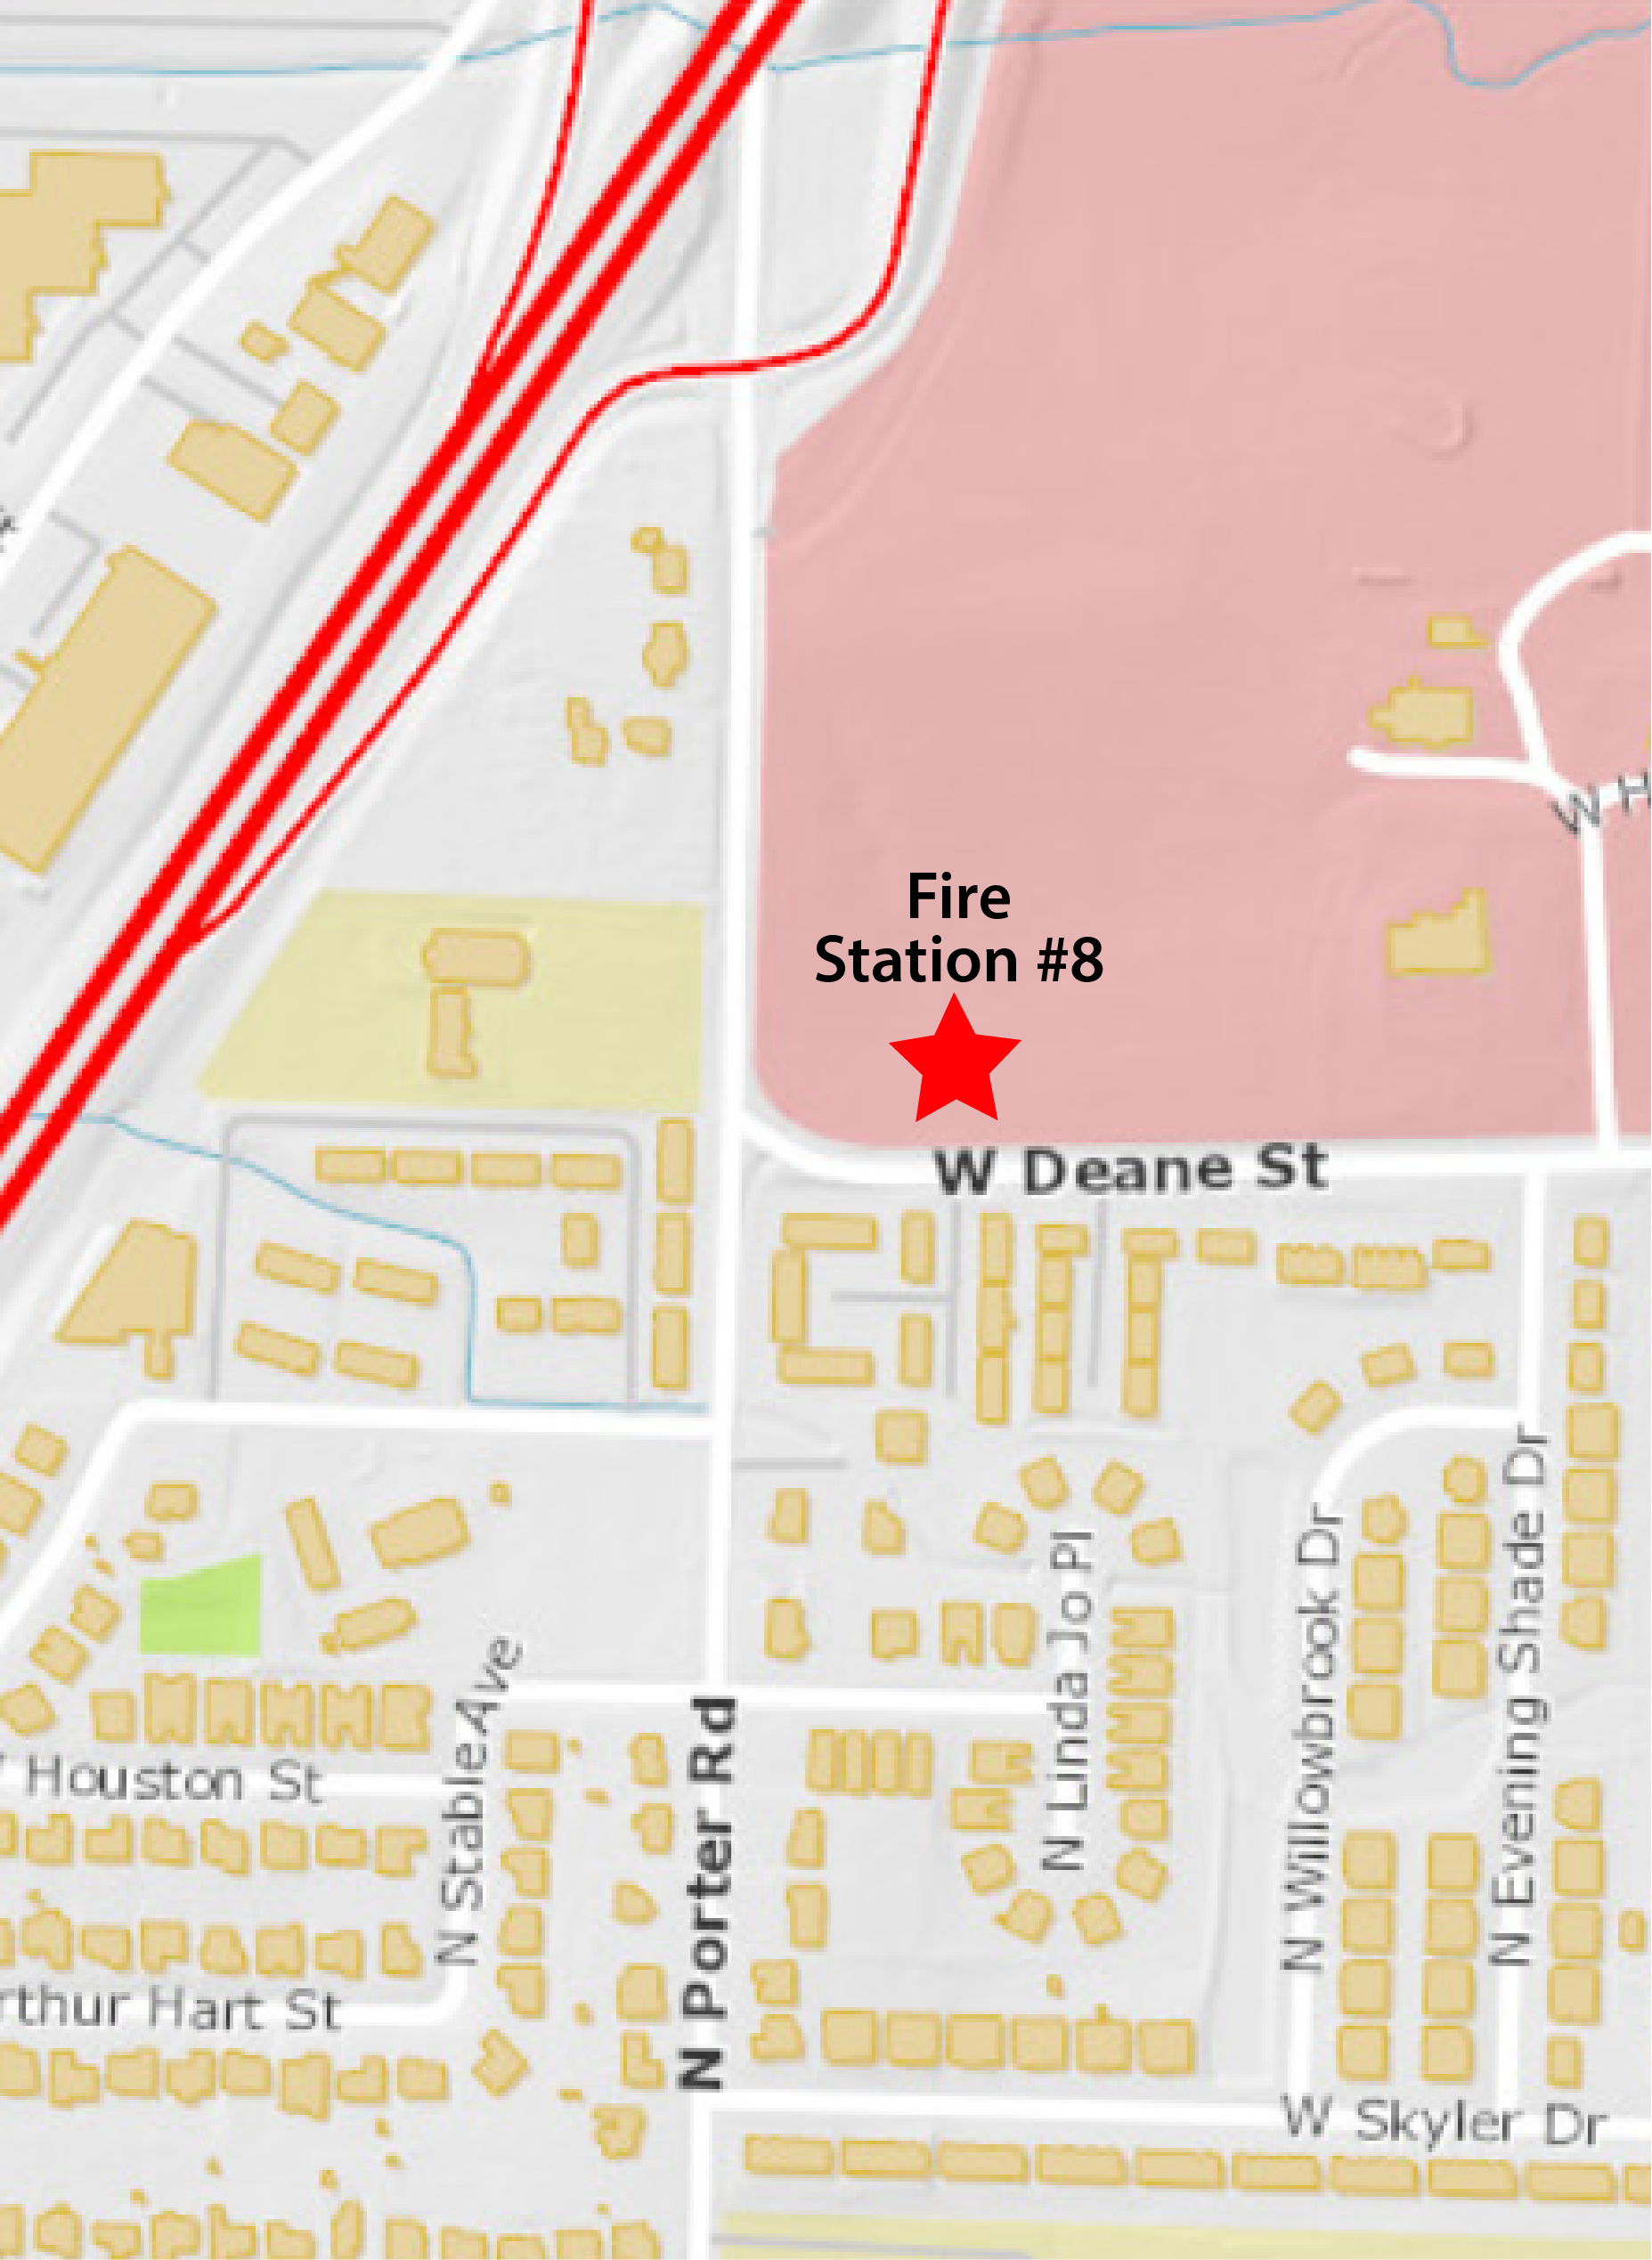 Map showing location of planned Fire Station 8